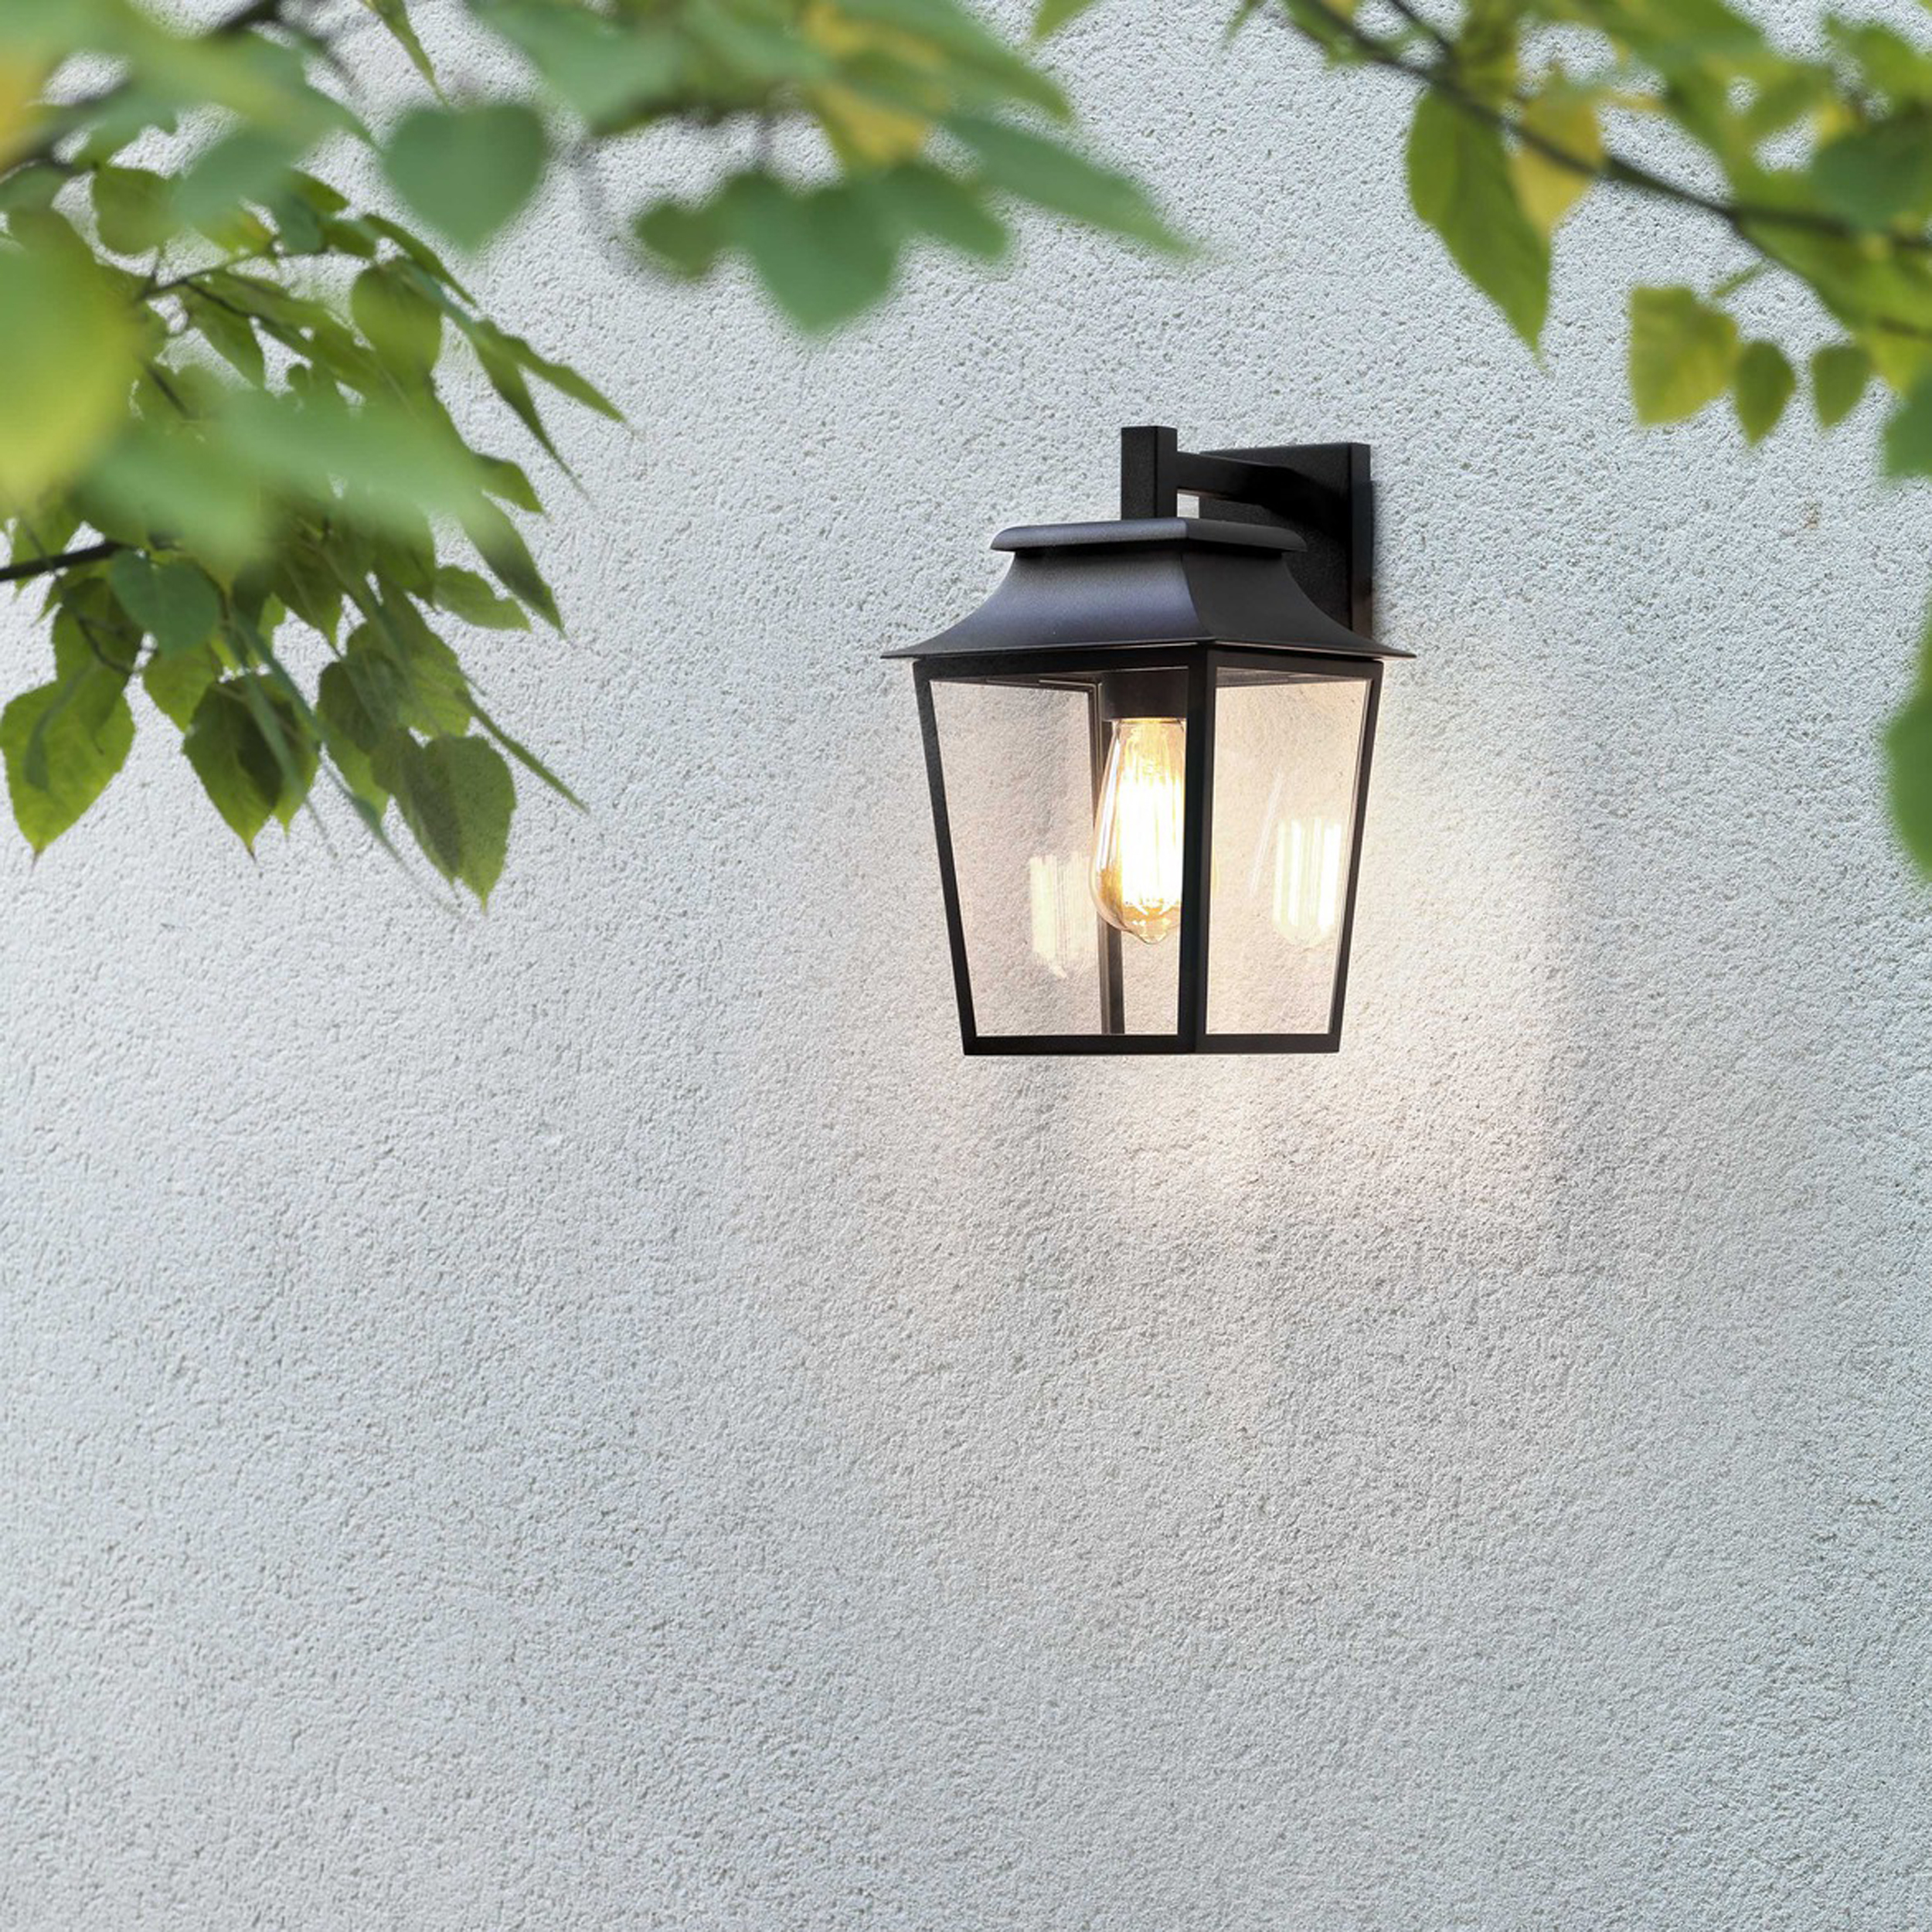 Astro Richmond Lantern 200 Wall Light Black B